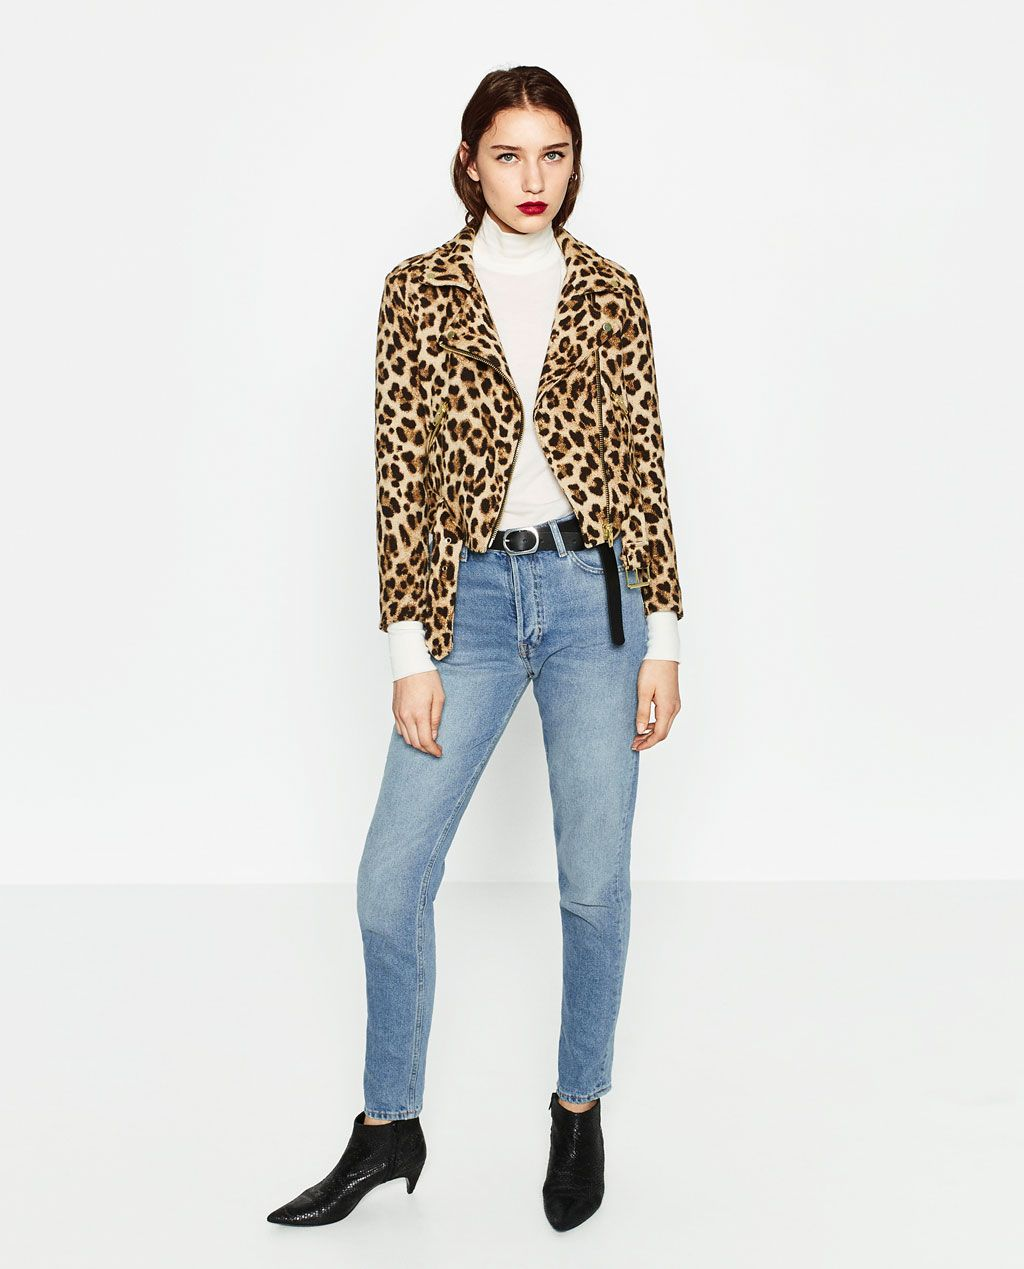 012ef6cea06 ANIMAL PRINT JACKET-TRENDING PICKS-WOMAN